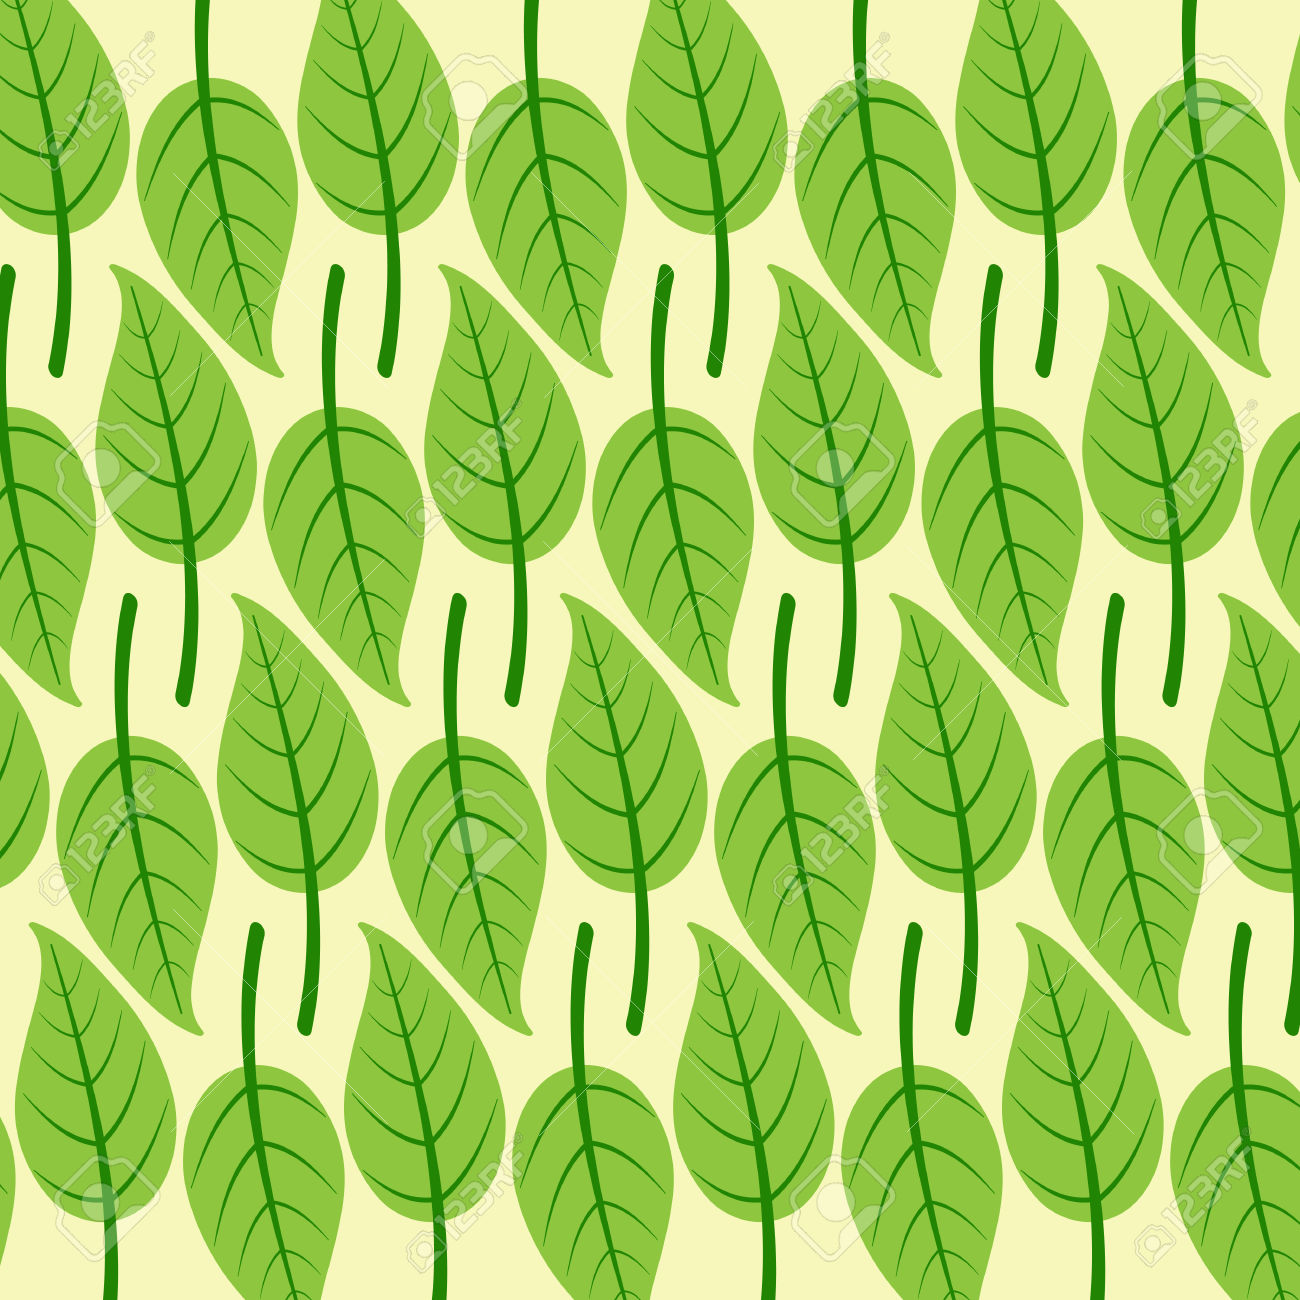 Background With Stylized Birch Leaves With Dark Green Veins In.